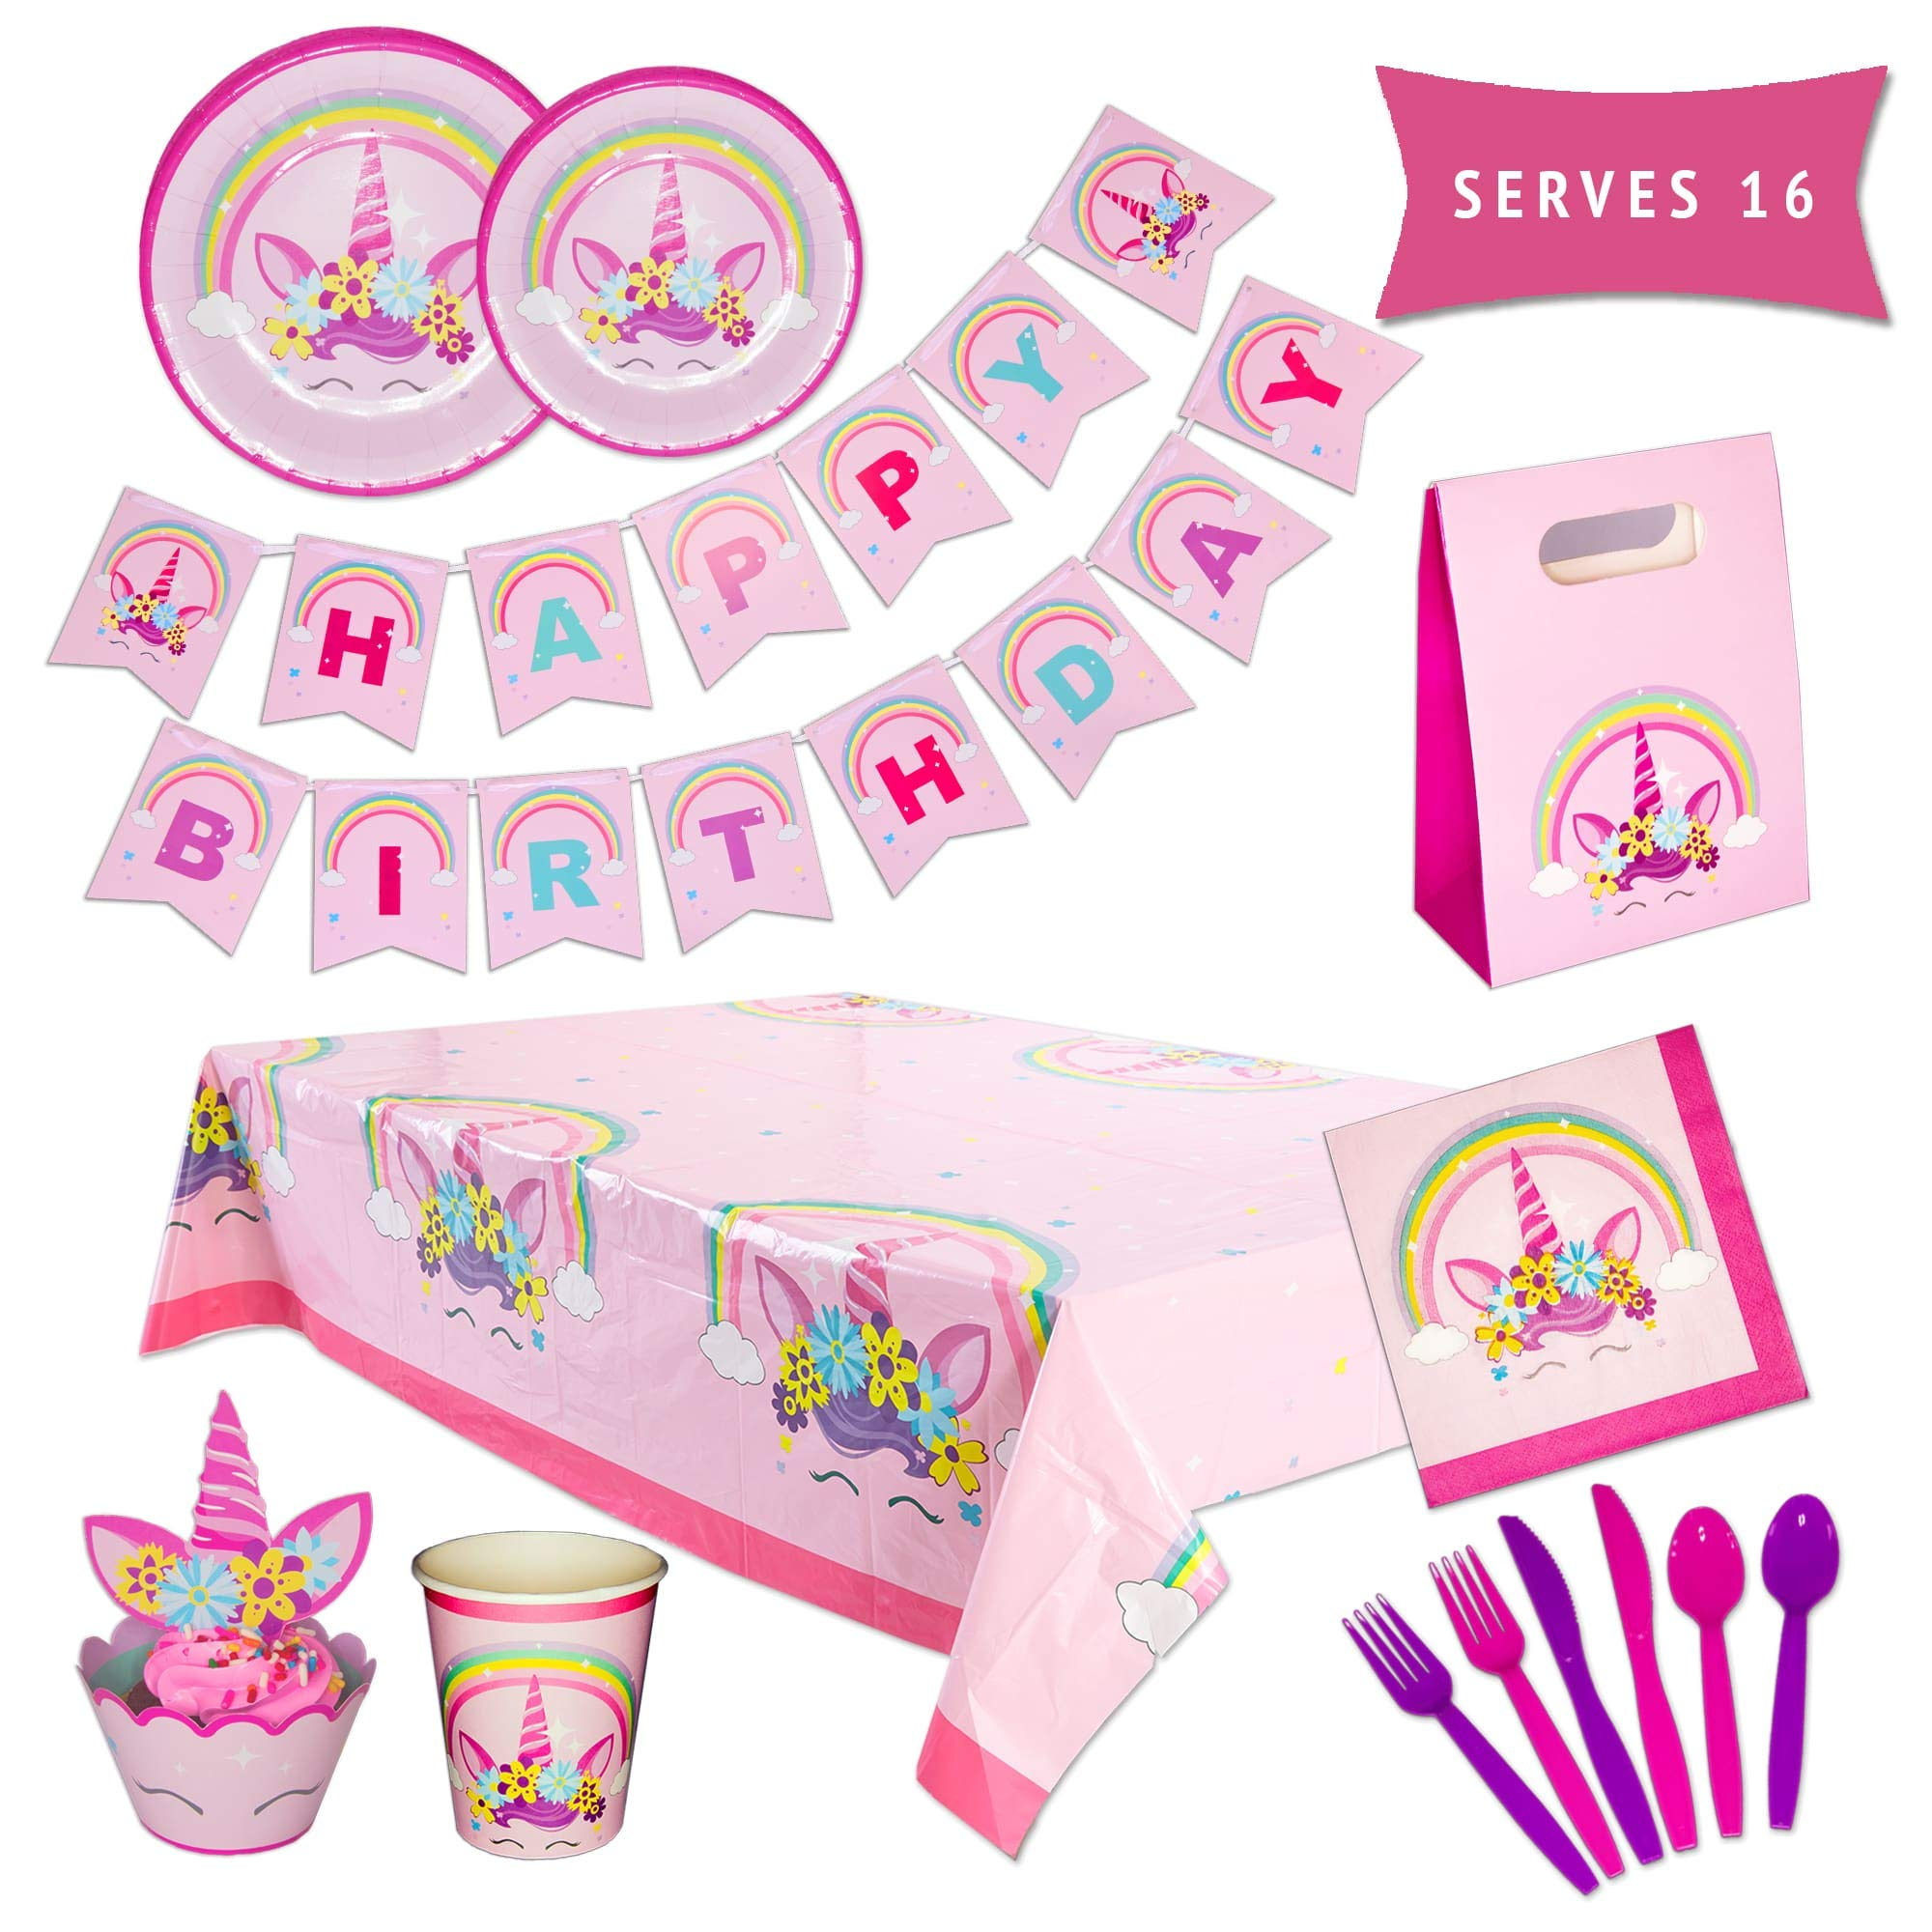 Unicorn Party Supplies Kit - Unicorn Party Decorations - Happy Birthday Banner, Party Plates, Party Cups, Cupcake Toppers & Wrappers, Favor Bags, Utensils & Table Cloth - 162 Piece Set by PARTY TYKES